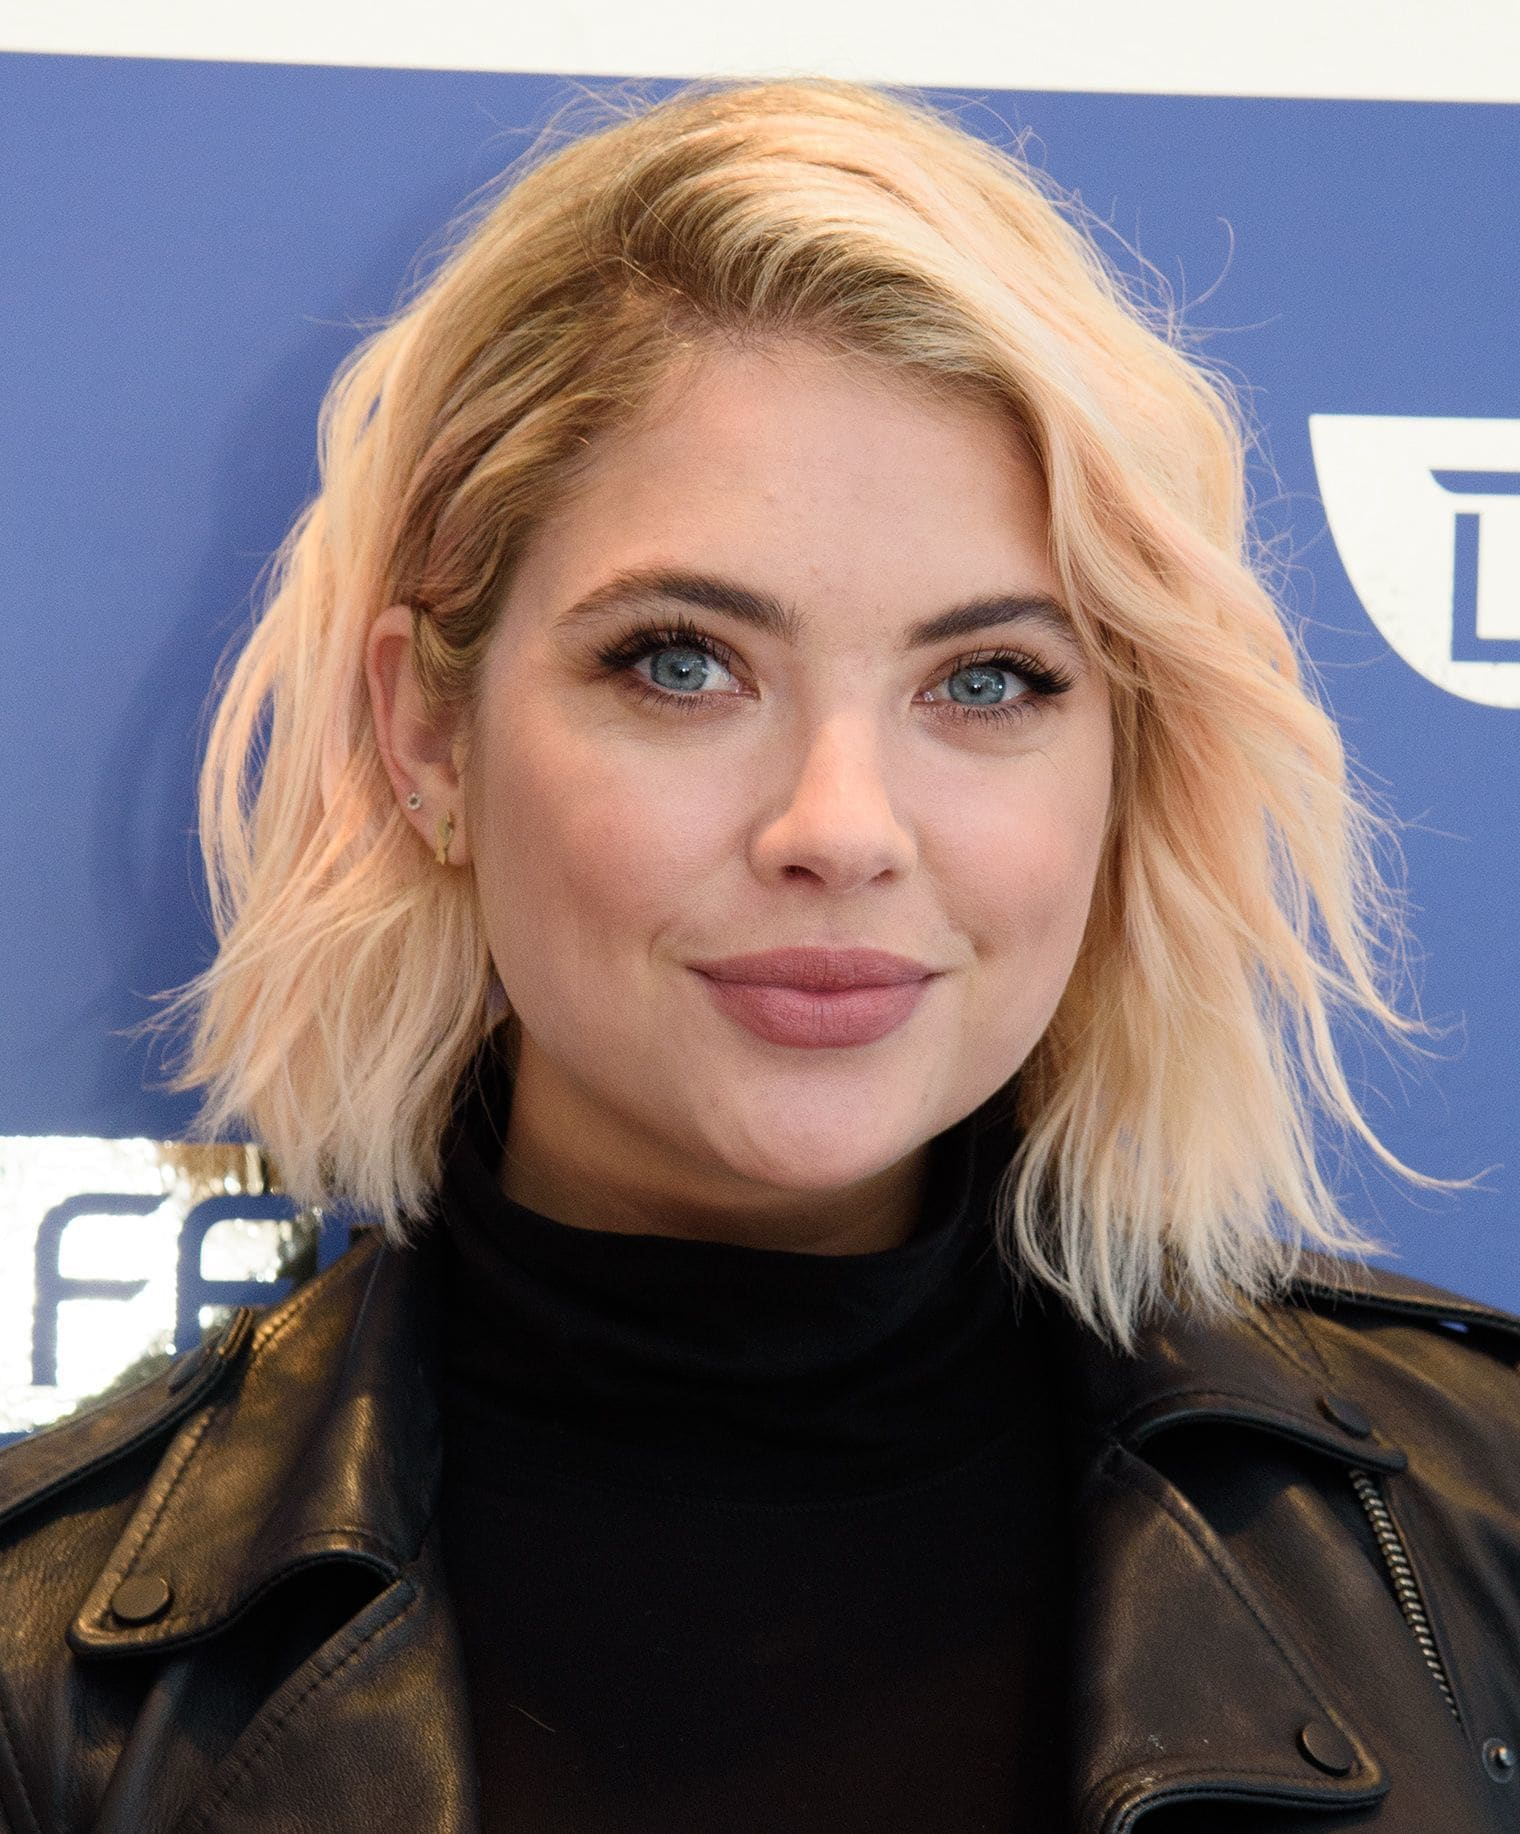 hairstyles for a round face: ashley benson with wavy chin length bob